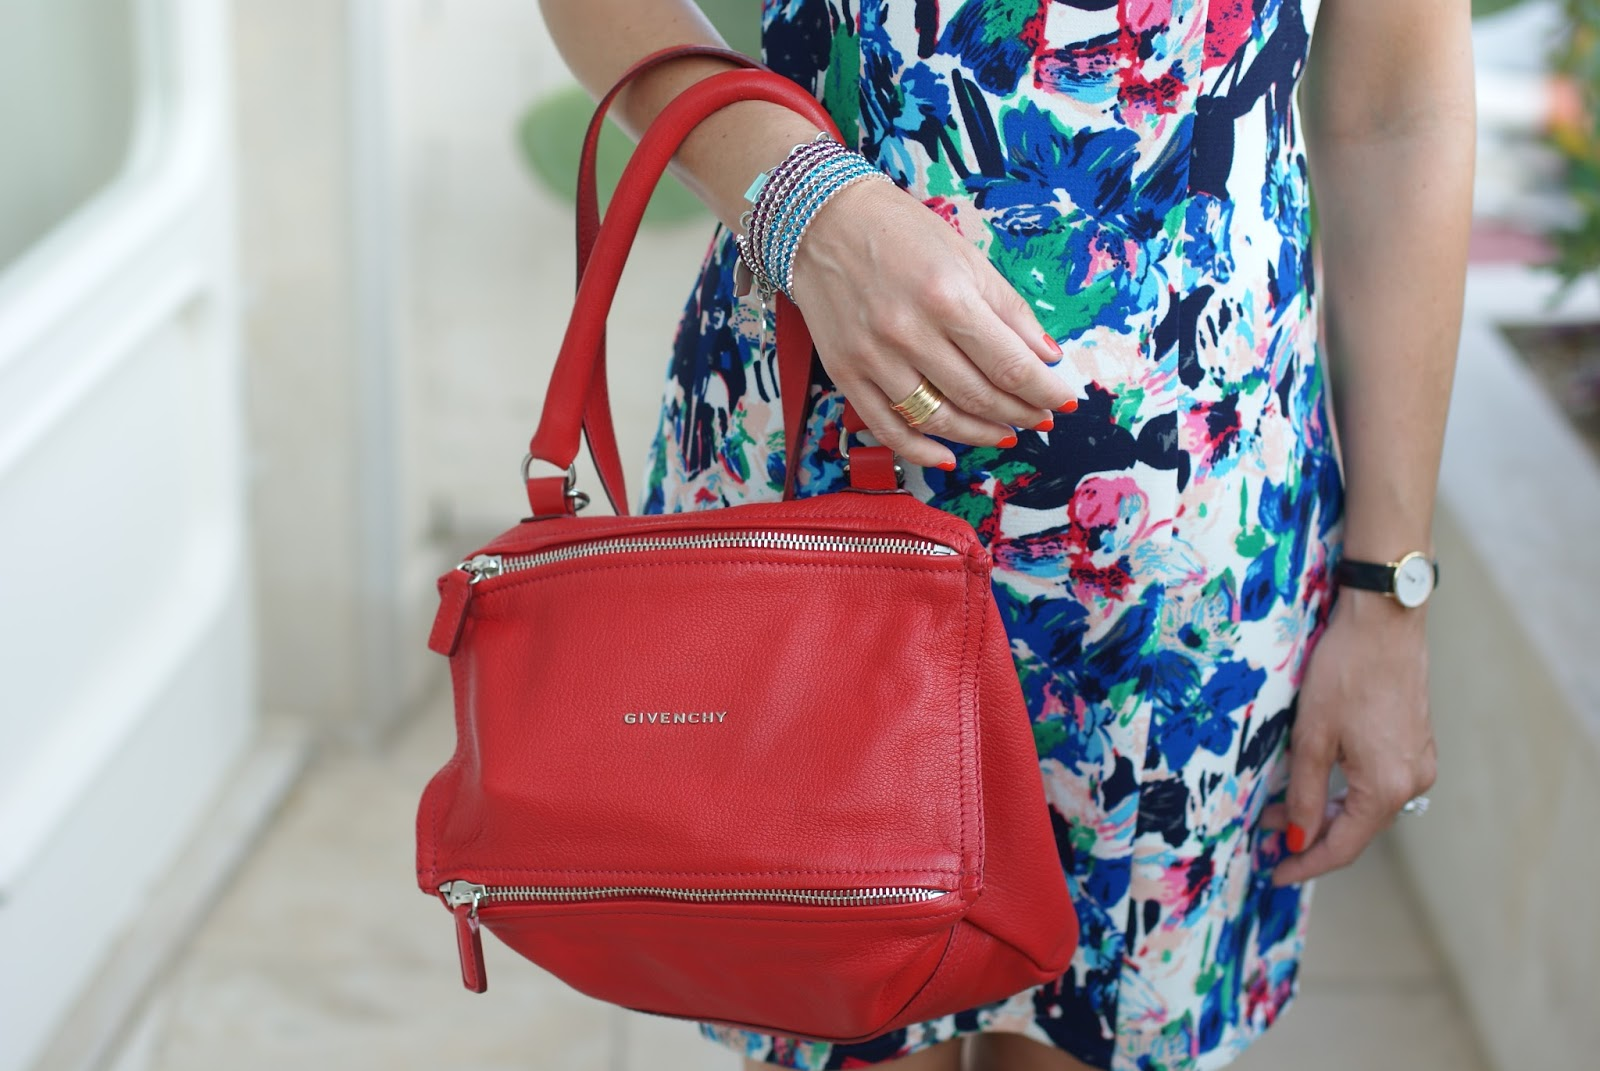 Givenchy bag and Luca Barra bangles on Fashion and Cookies fashion blog